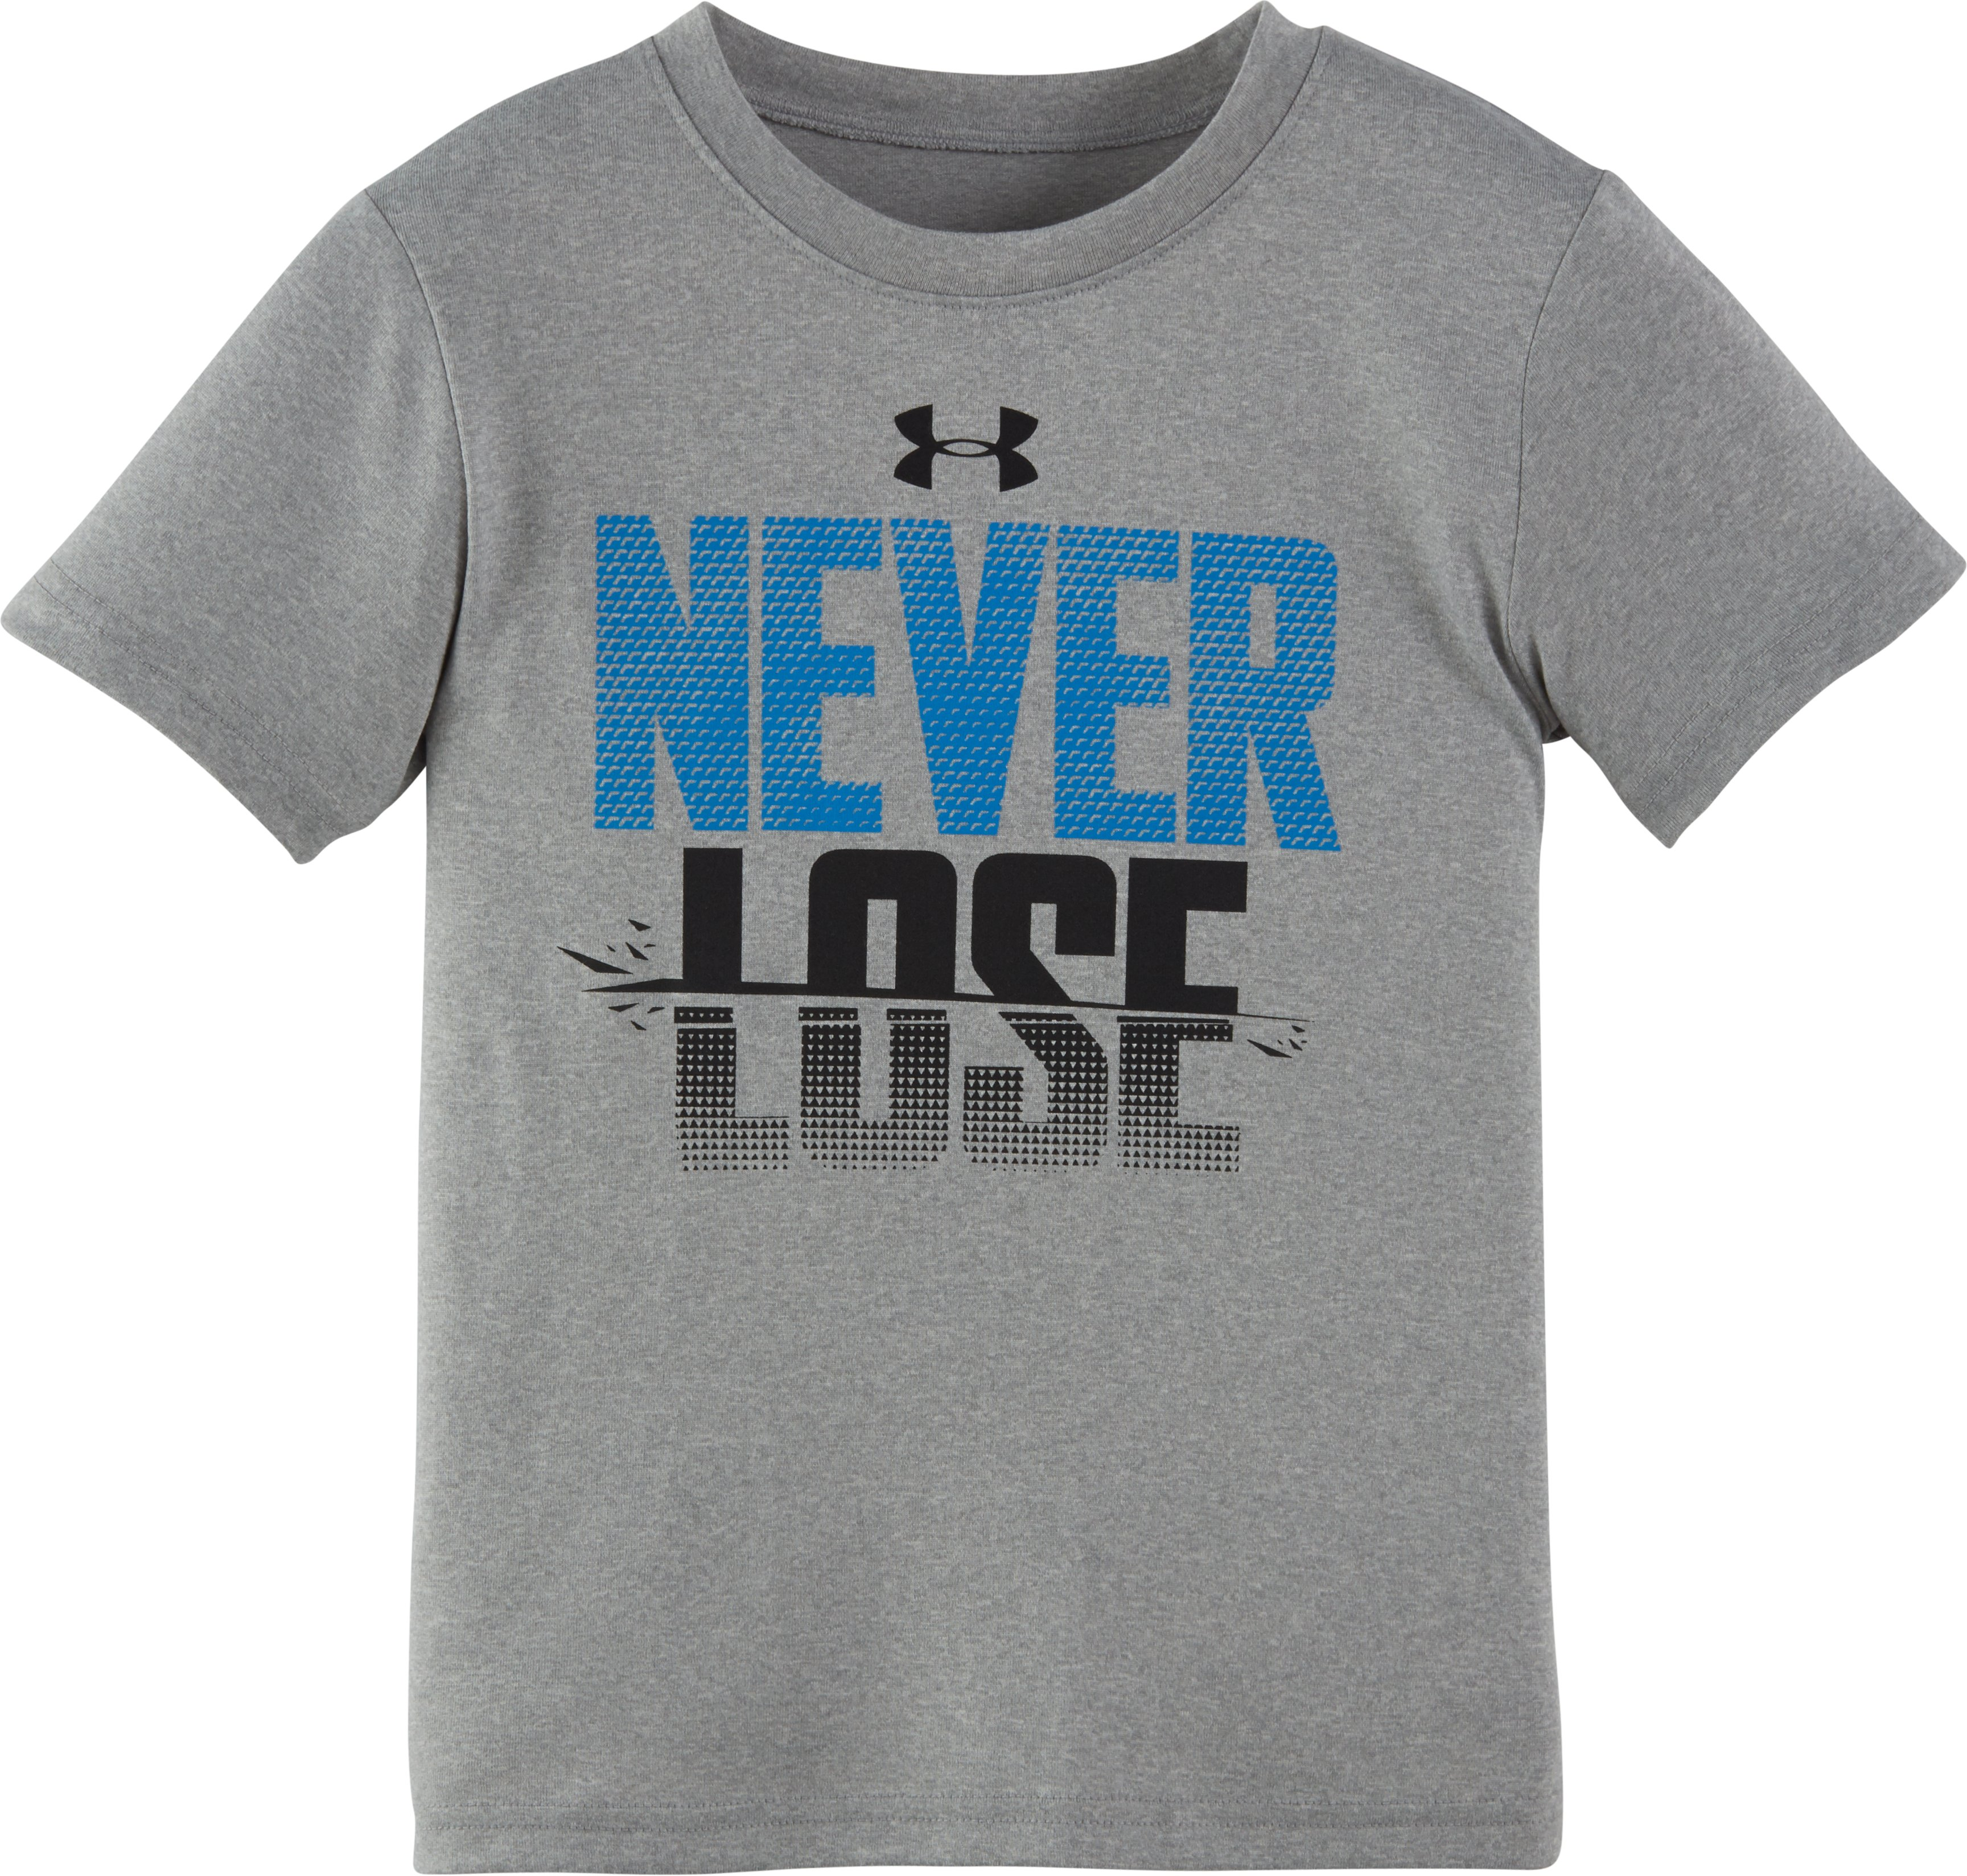 Boys' Infant UA Never Lose Short Sleeve T-Shirt, True Gray Heather, Laydown